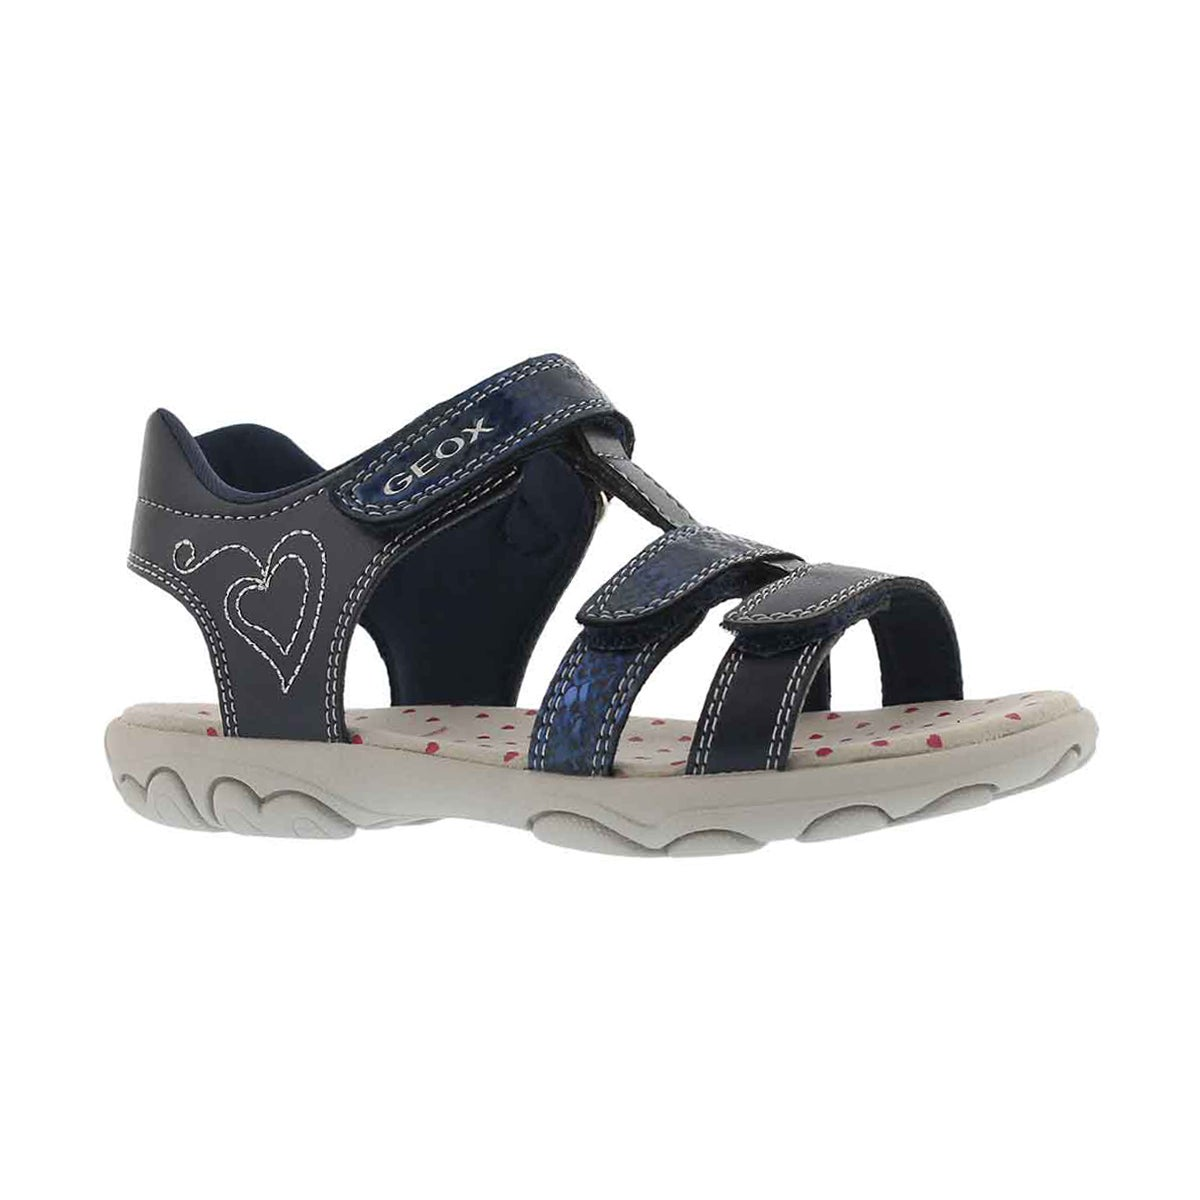 Girls' JR CUORE navy casual sandals